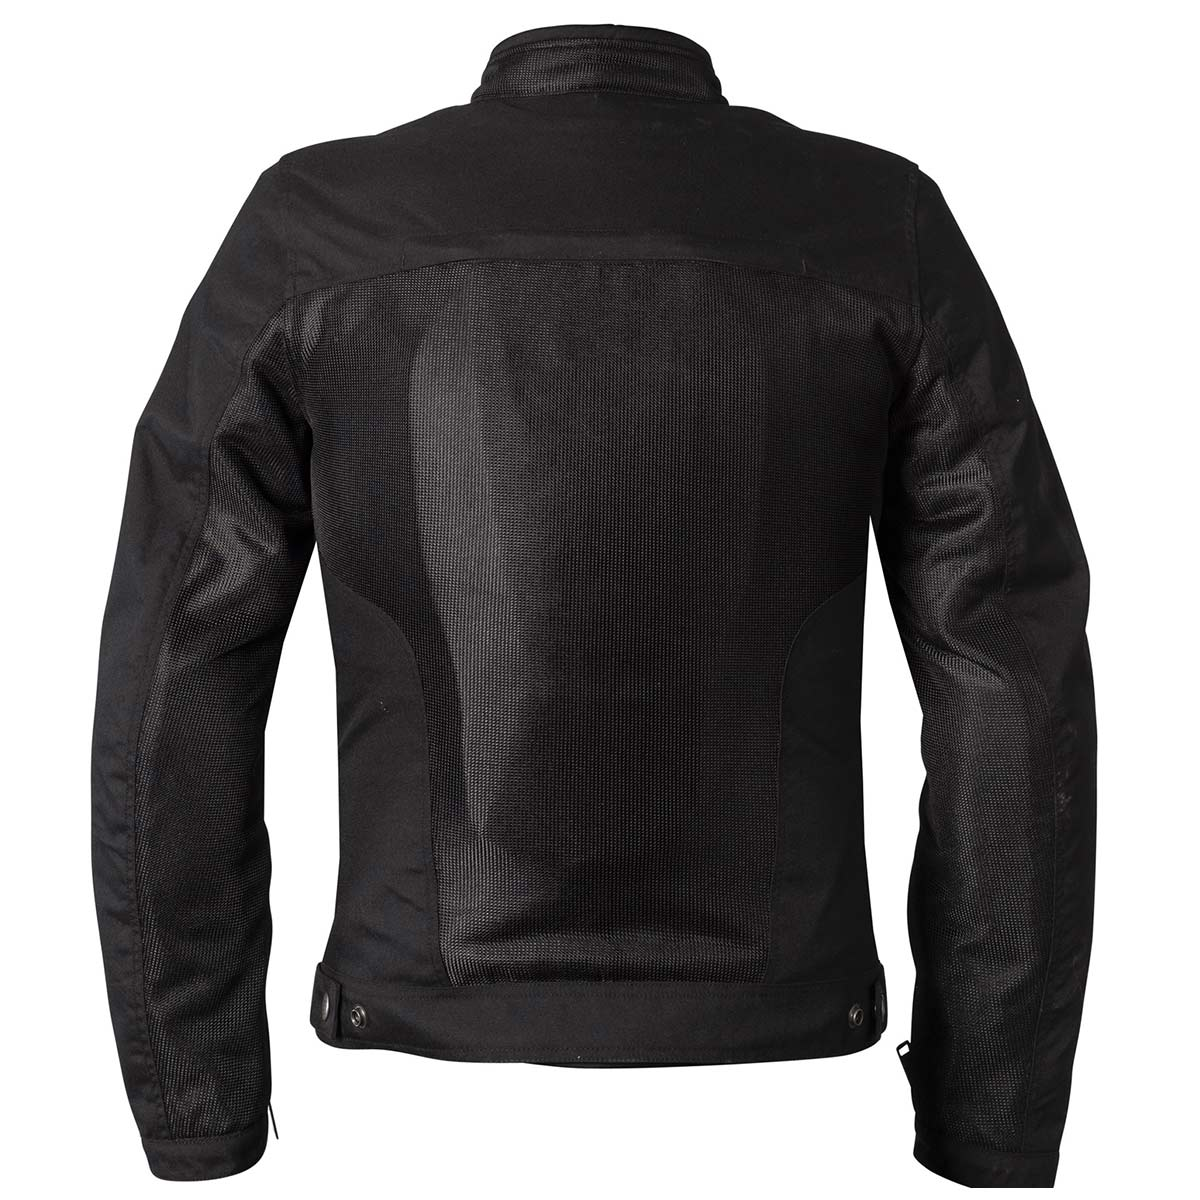 Helstons Spring Mesh Womens Jacket - Black